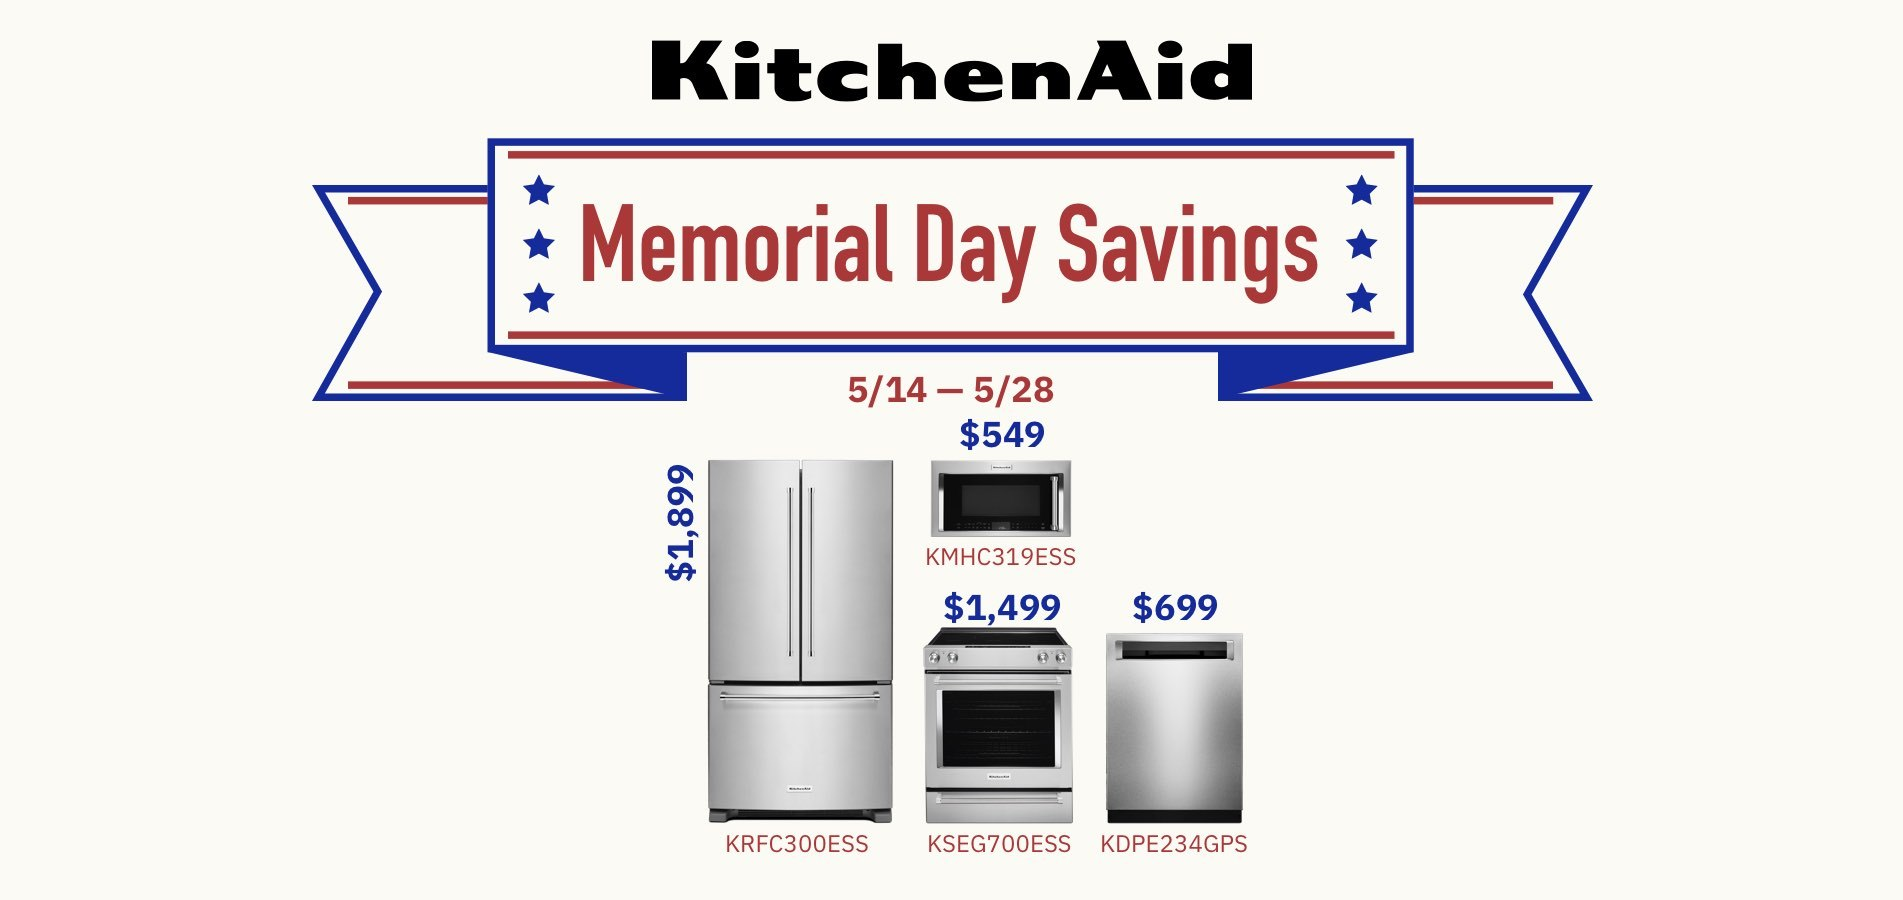 KitchenAid Memorial Day